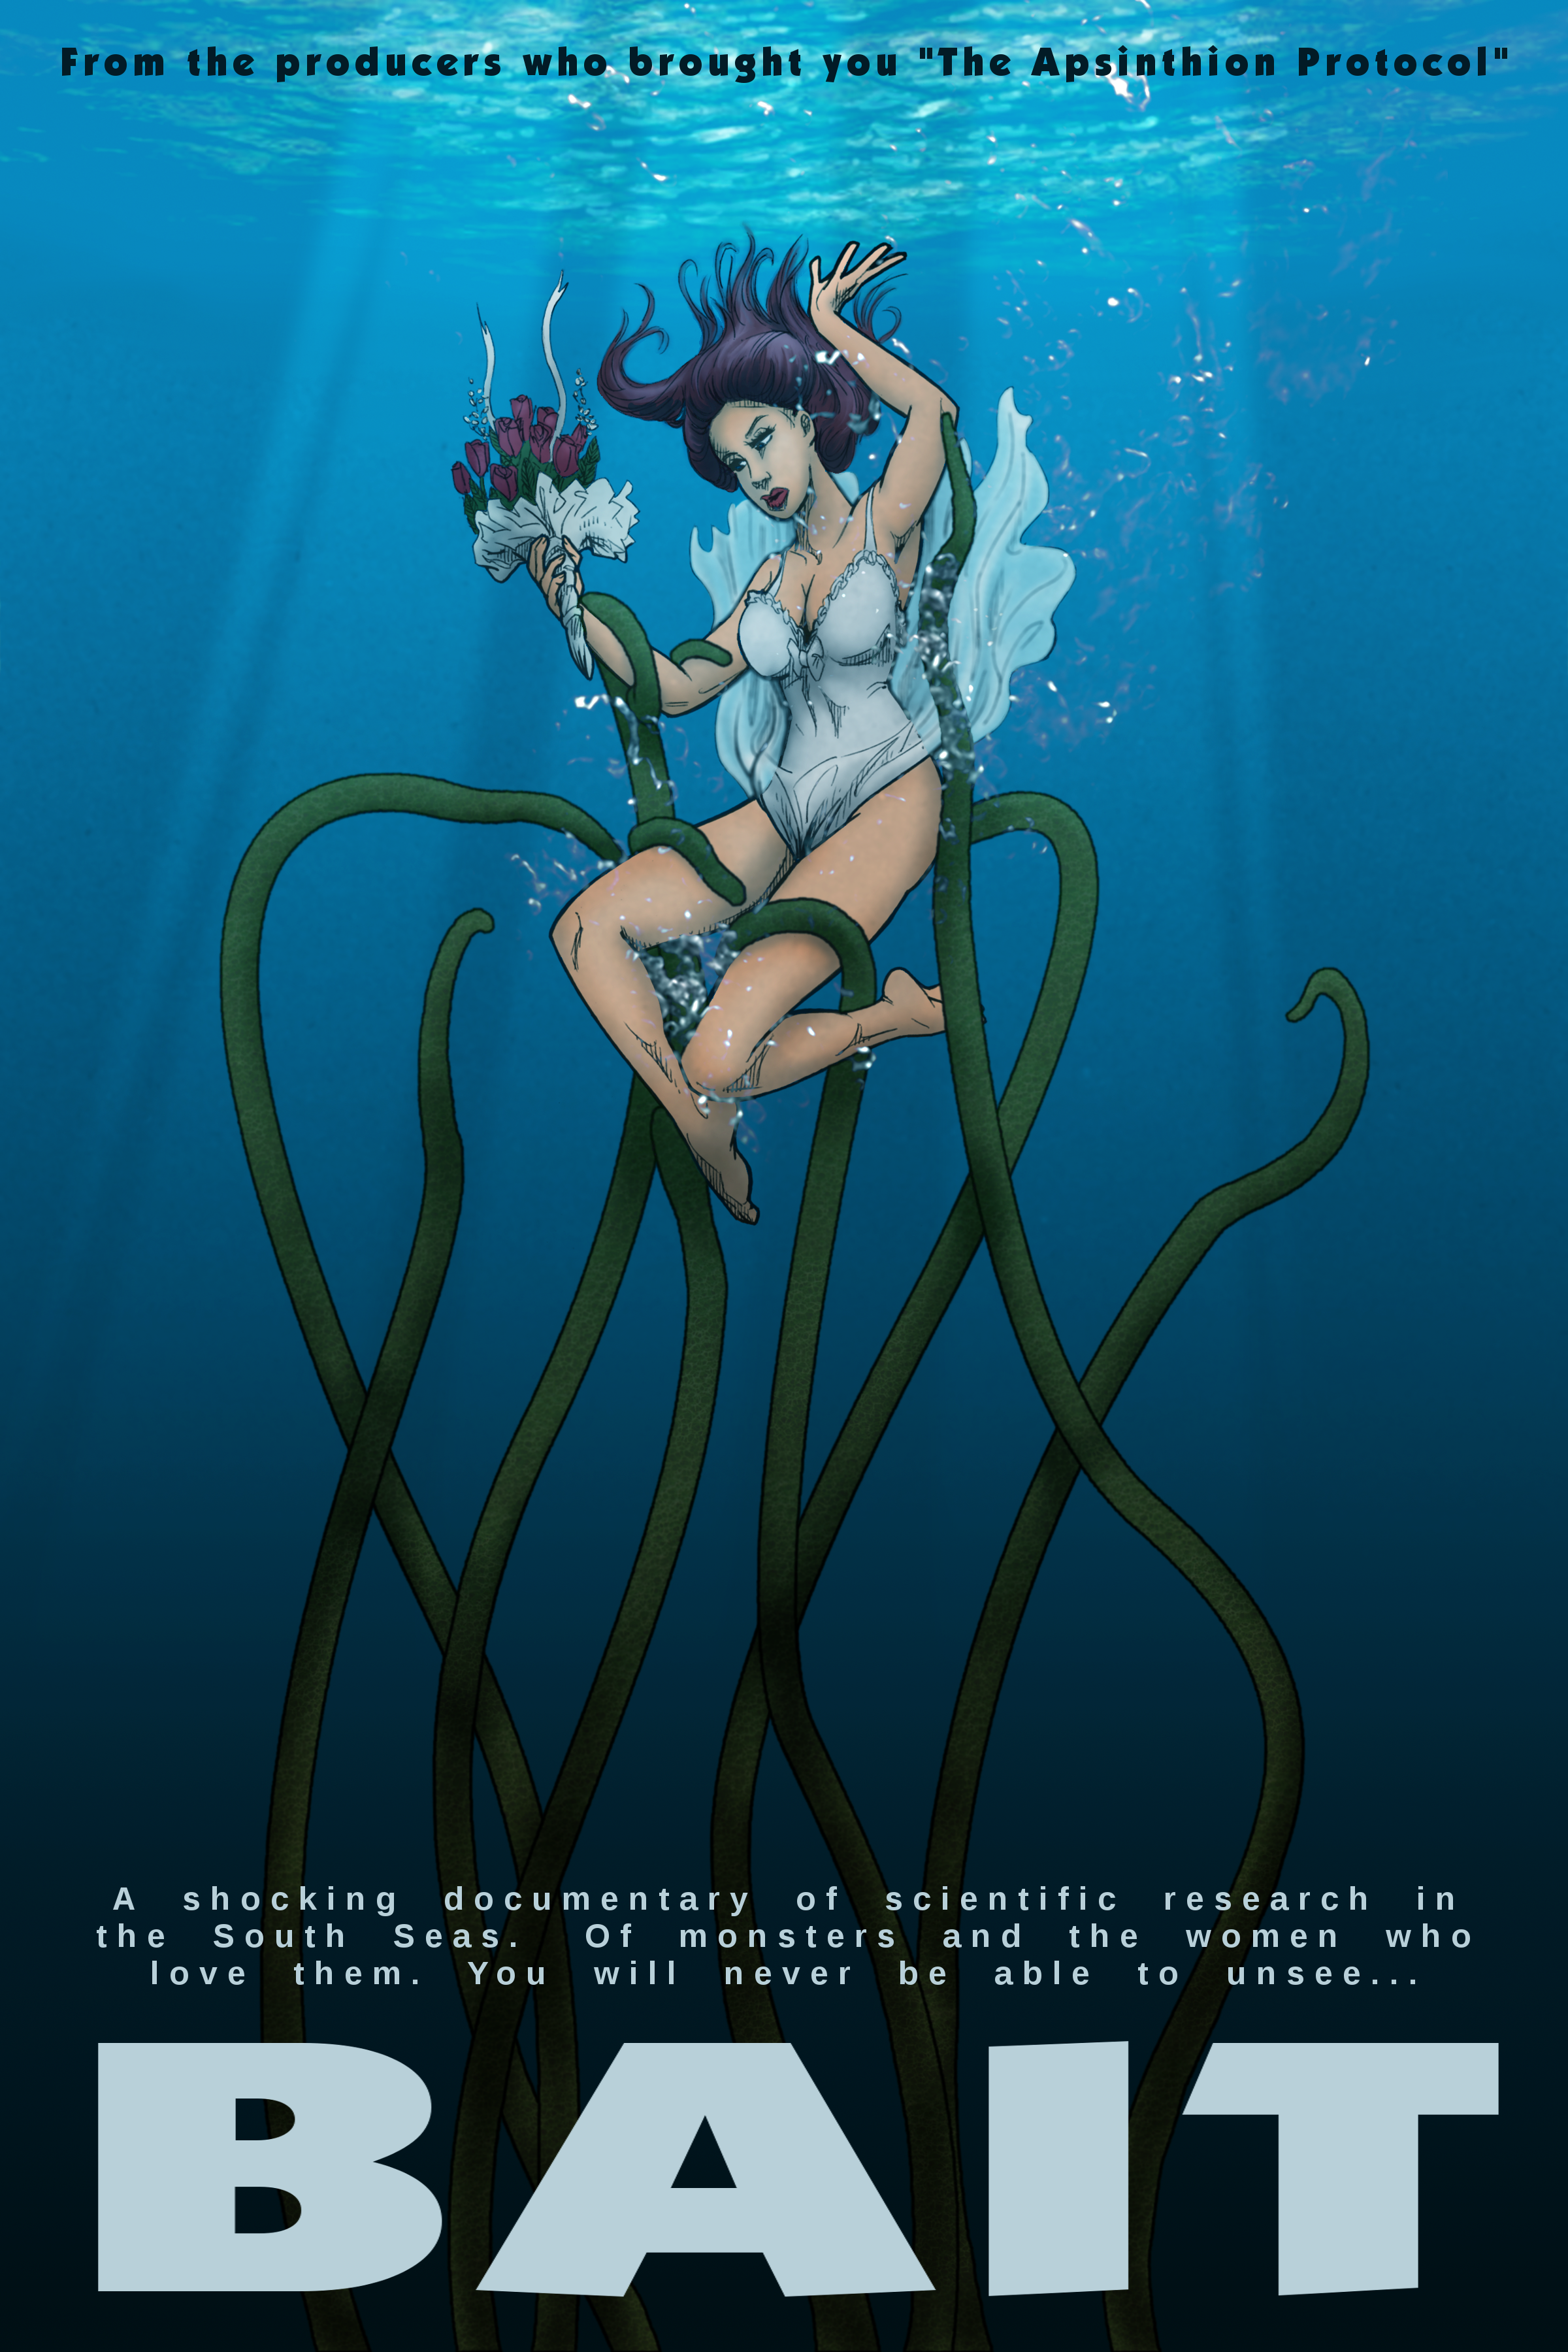 """Imagined poster promoting the tentacle sex pseudo-documentary """"Bait."""""""